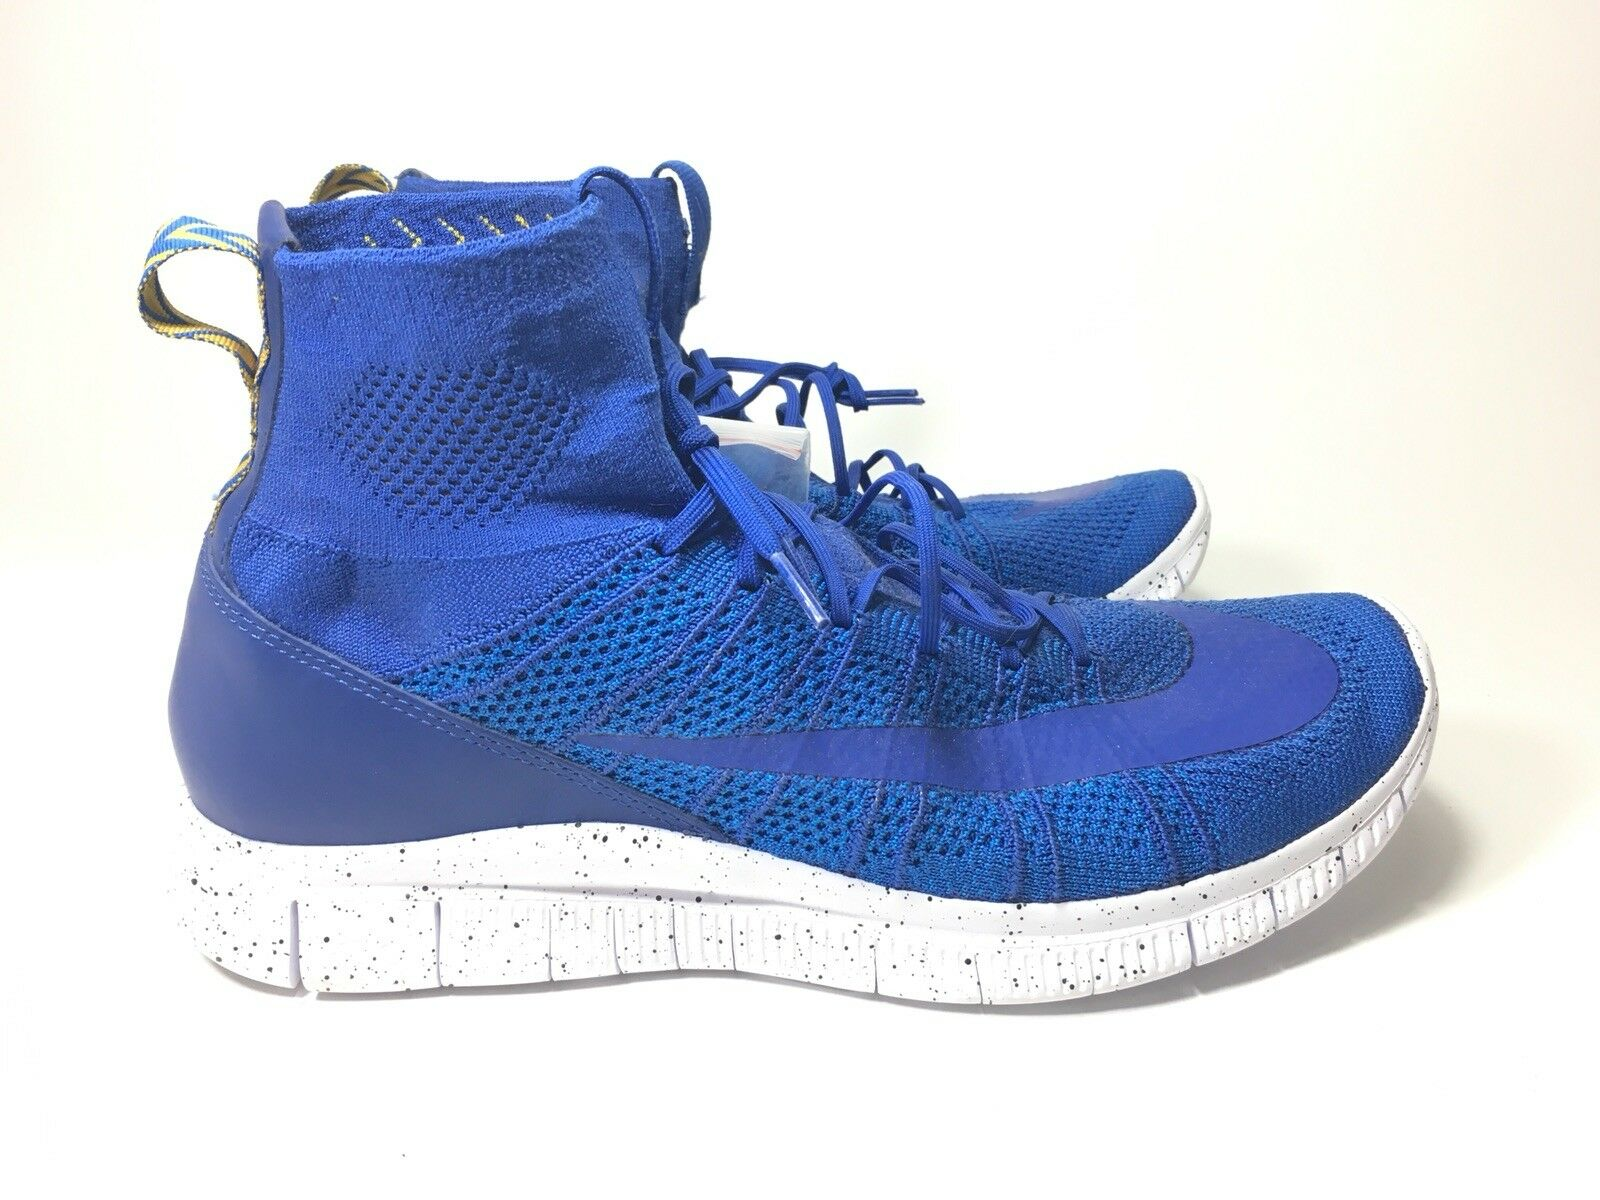 Nike Free Flyknit Mercurial Game Royal Blue 805554 Superfly 400 Men's Size 10 Superfly 805554 Cr 72a364